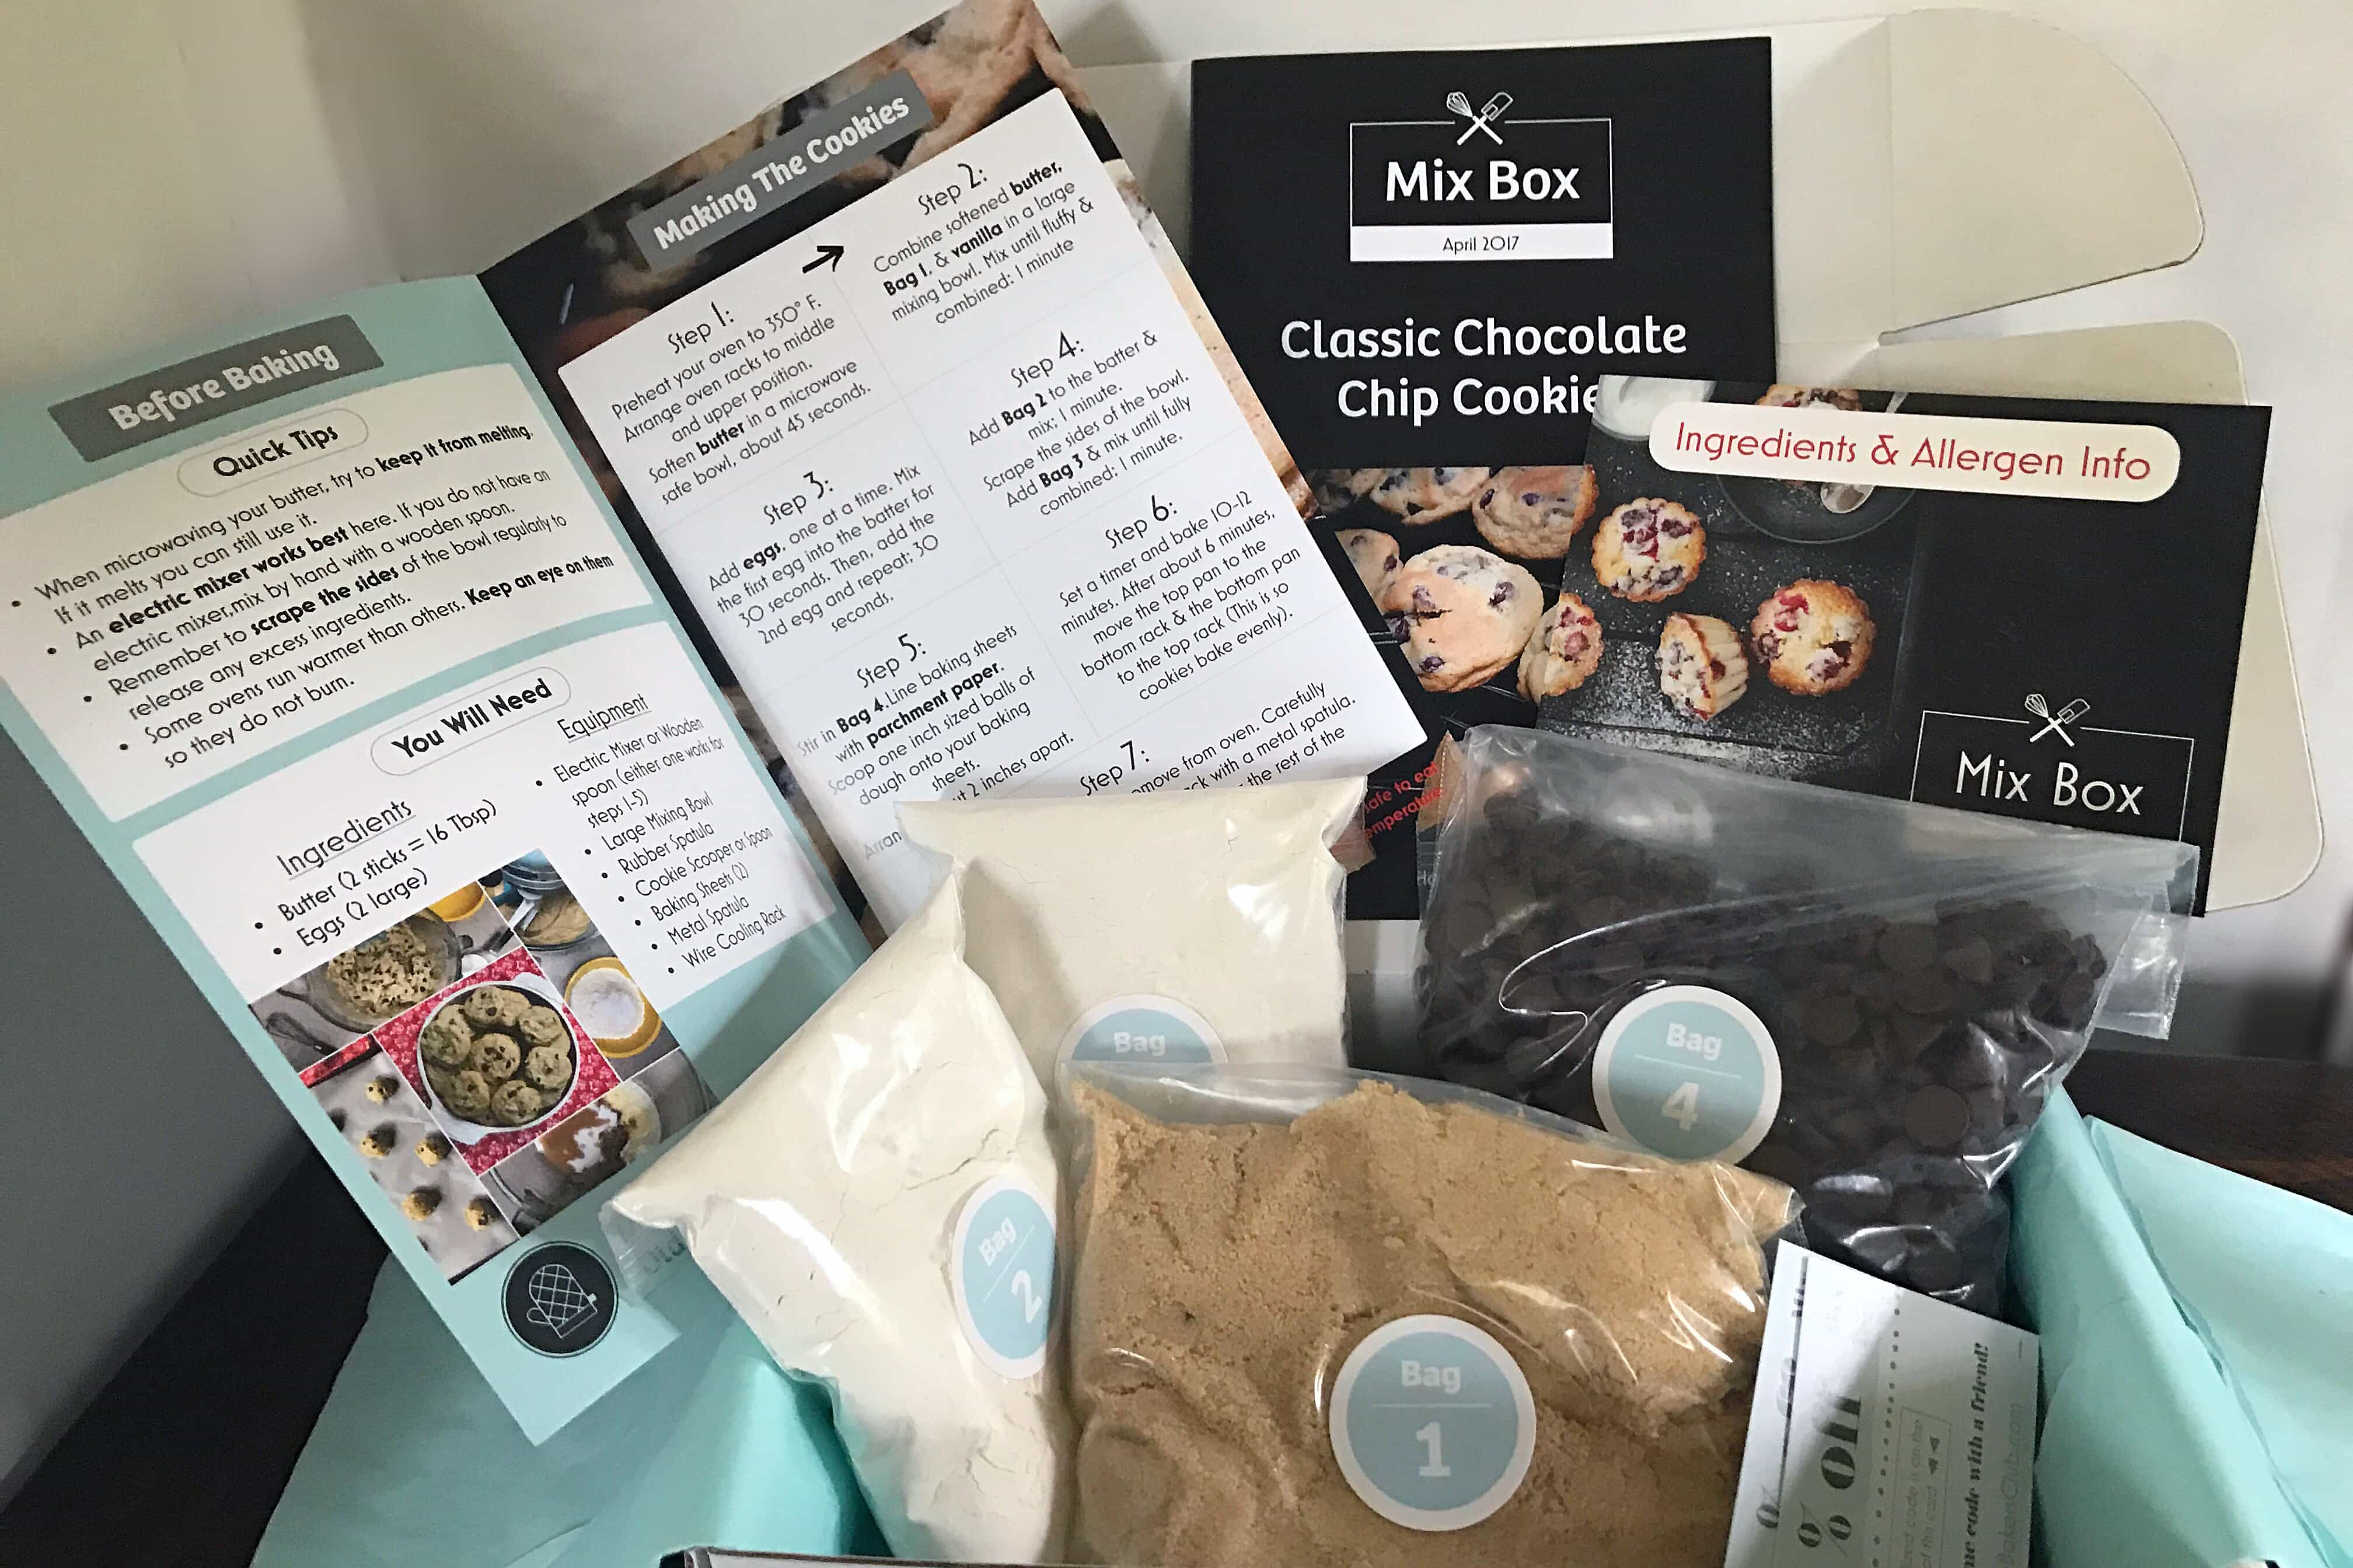 Mix Box by Homemade Bakers 2017 Black Friday Deal: Get 50% OFF First Box!